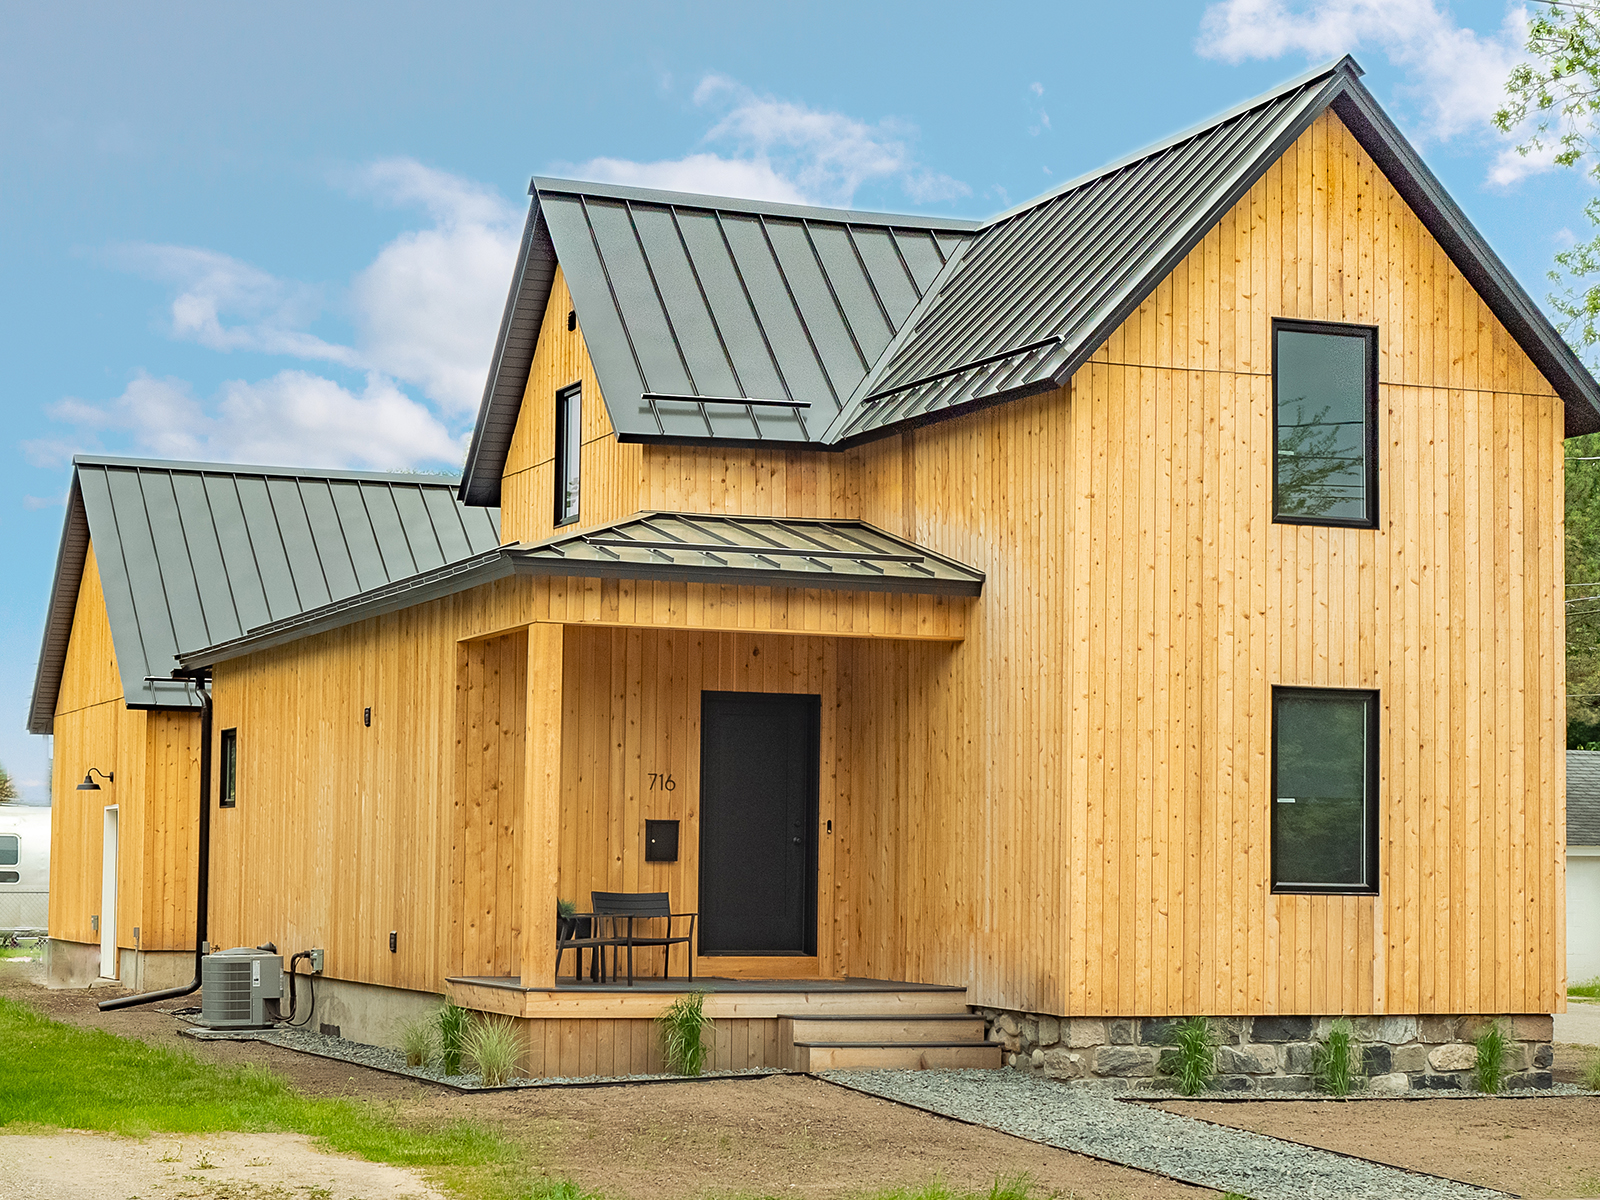 A wooden clad home in Traverse City